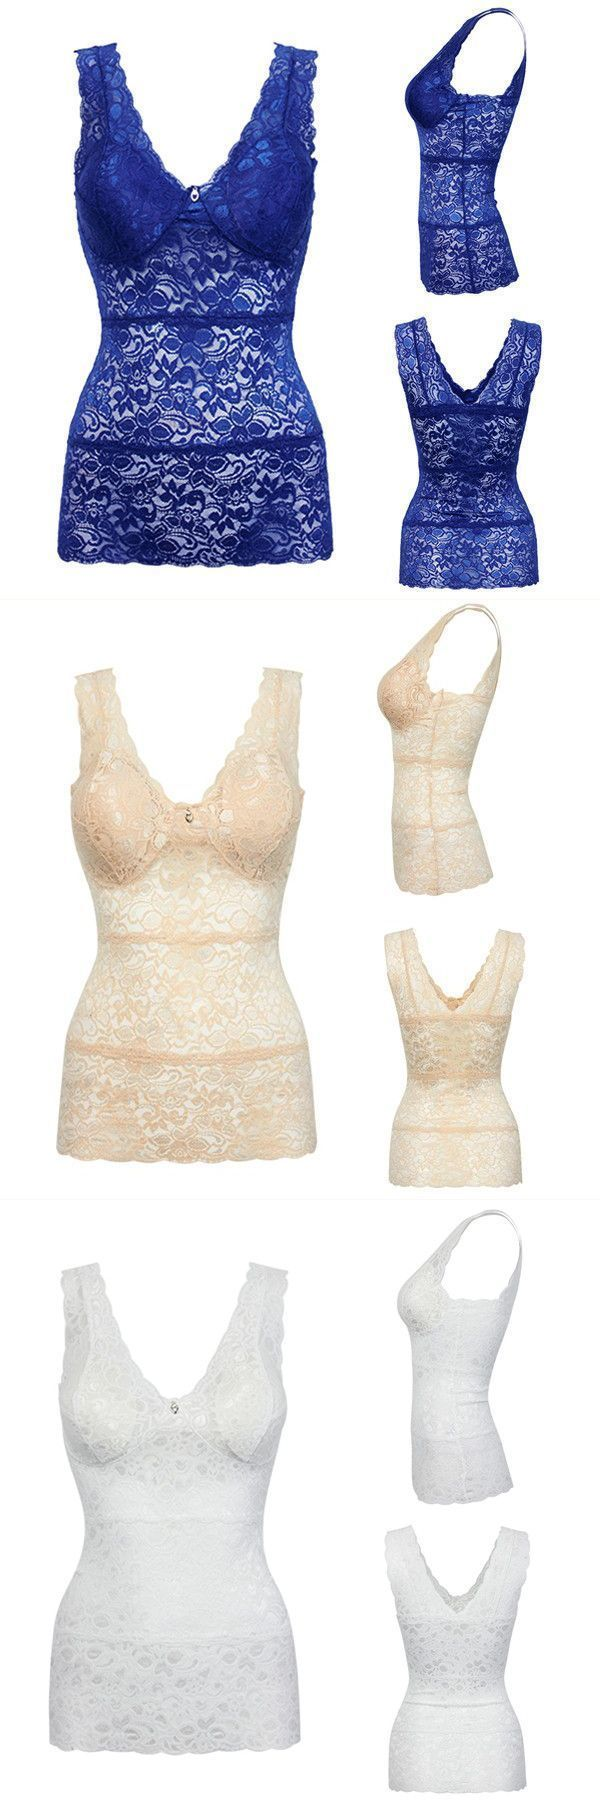 Women plus size full lace thin breathable no rims padded removable yoga bra vest fashion bra online india #bra #open #in #fashion #show #bra #penty #fashion #show #jual #bra #fashion #without #bra #fashion #show